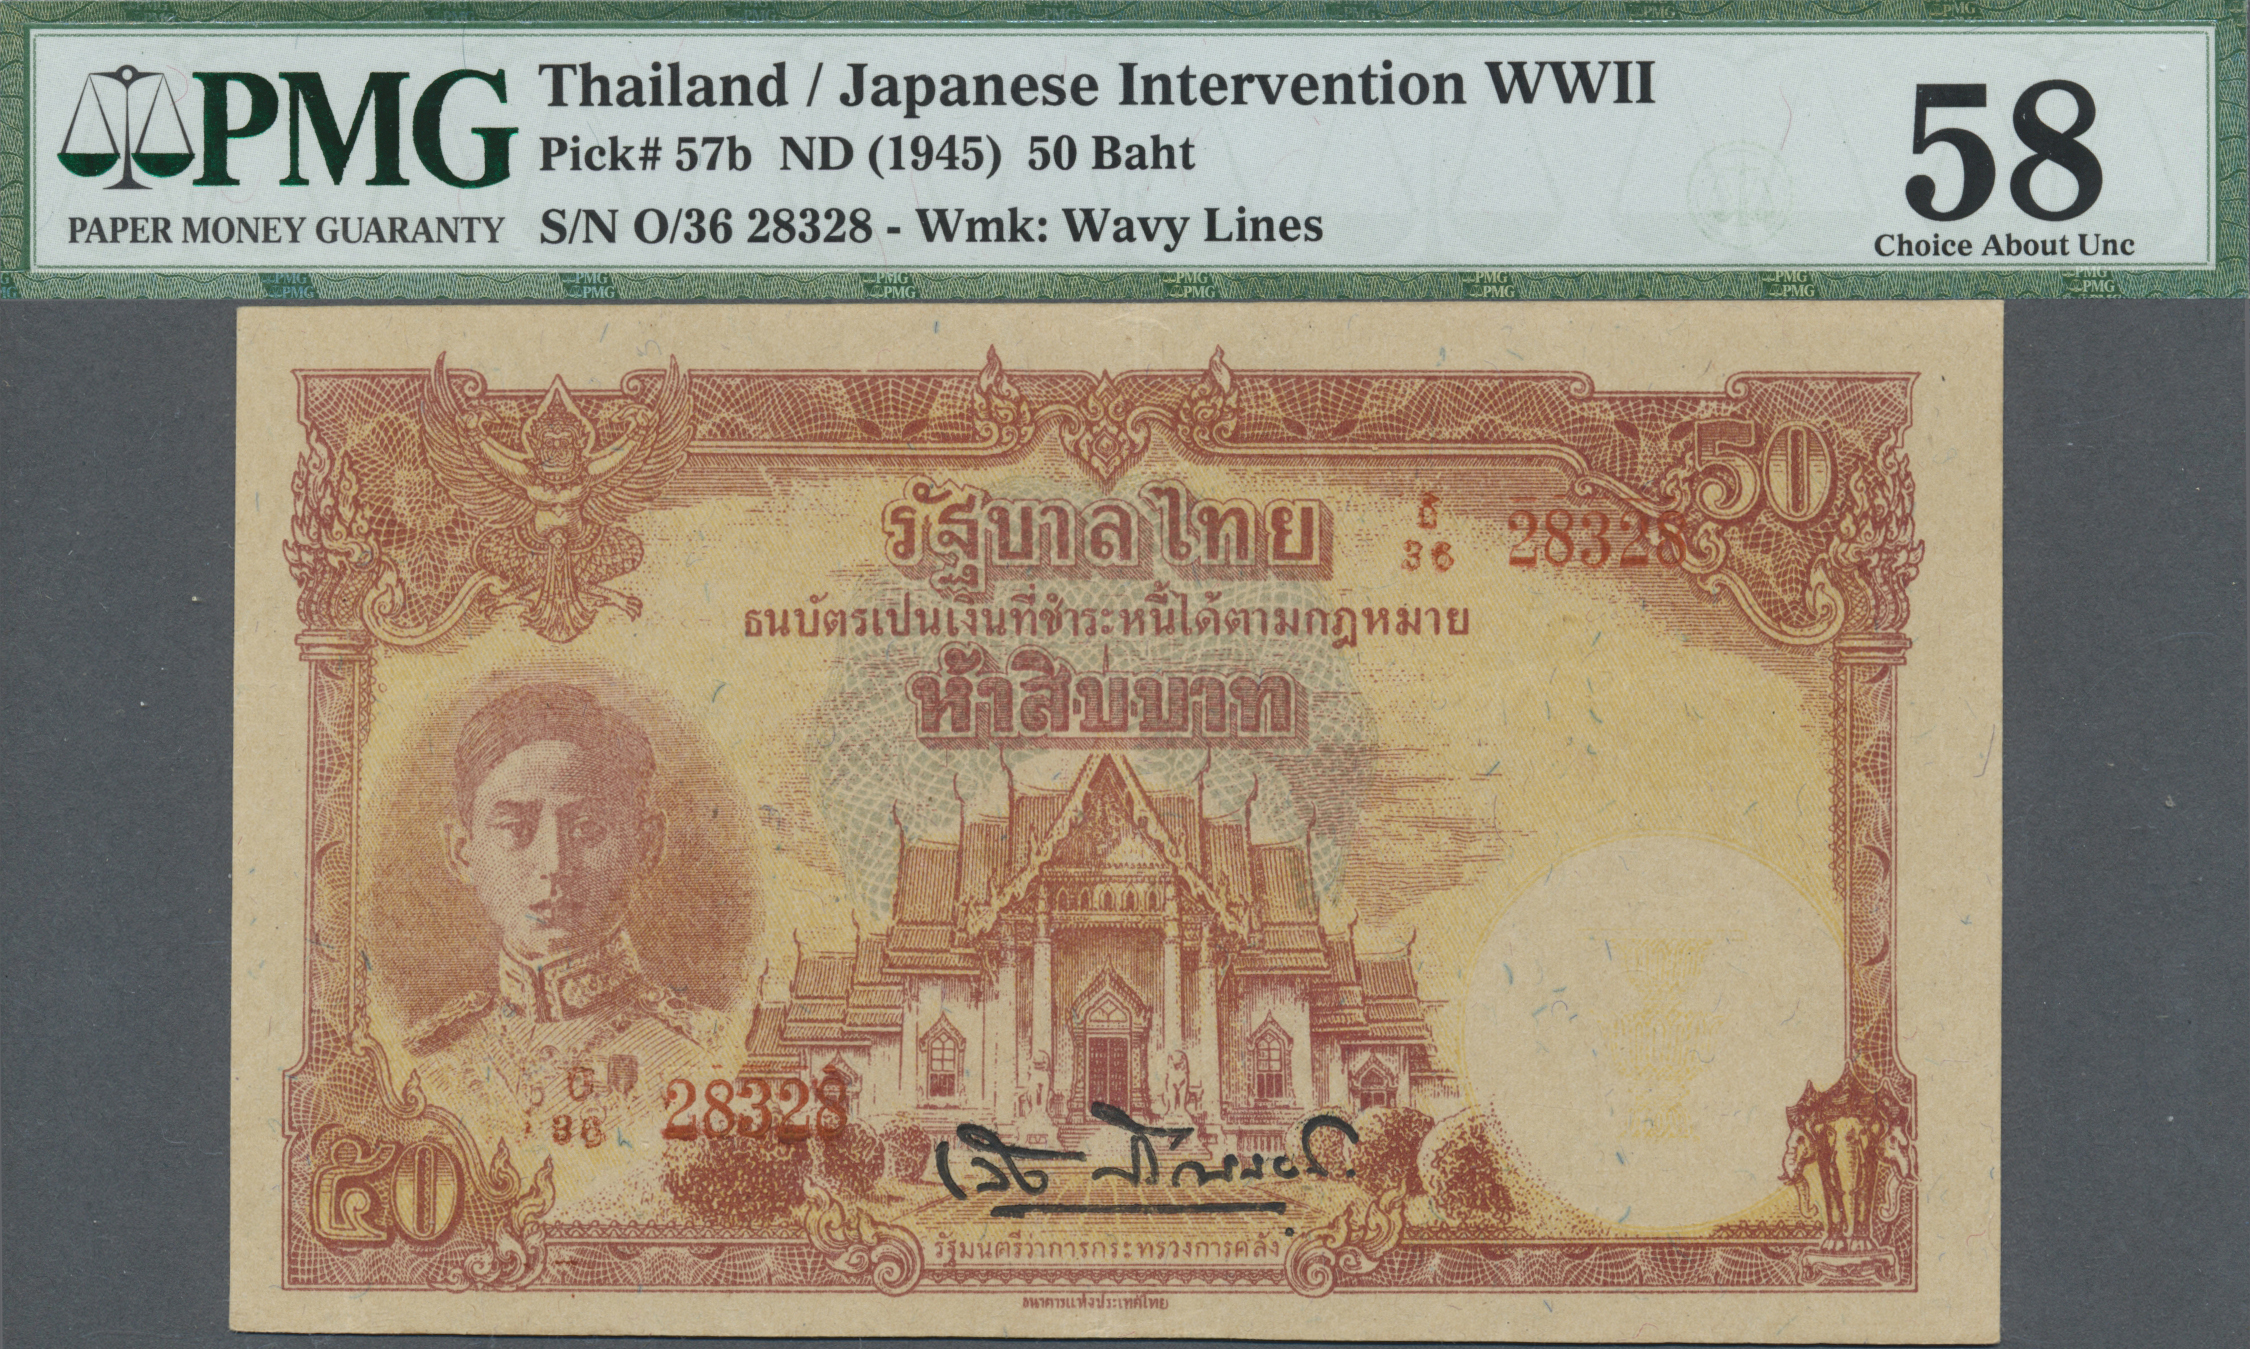 Lot 2011 - Thailand | Banknoten  -  Auktionshaus Christoph Gärtner GmbH & Co. KG Banknotes & Coins Auction #39 Day 2